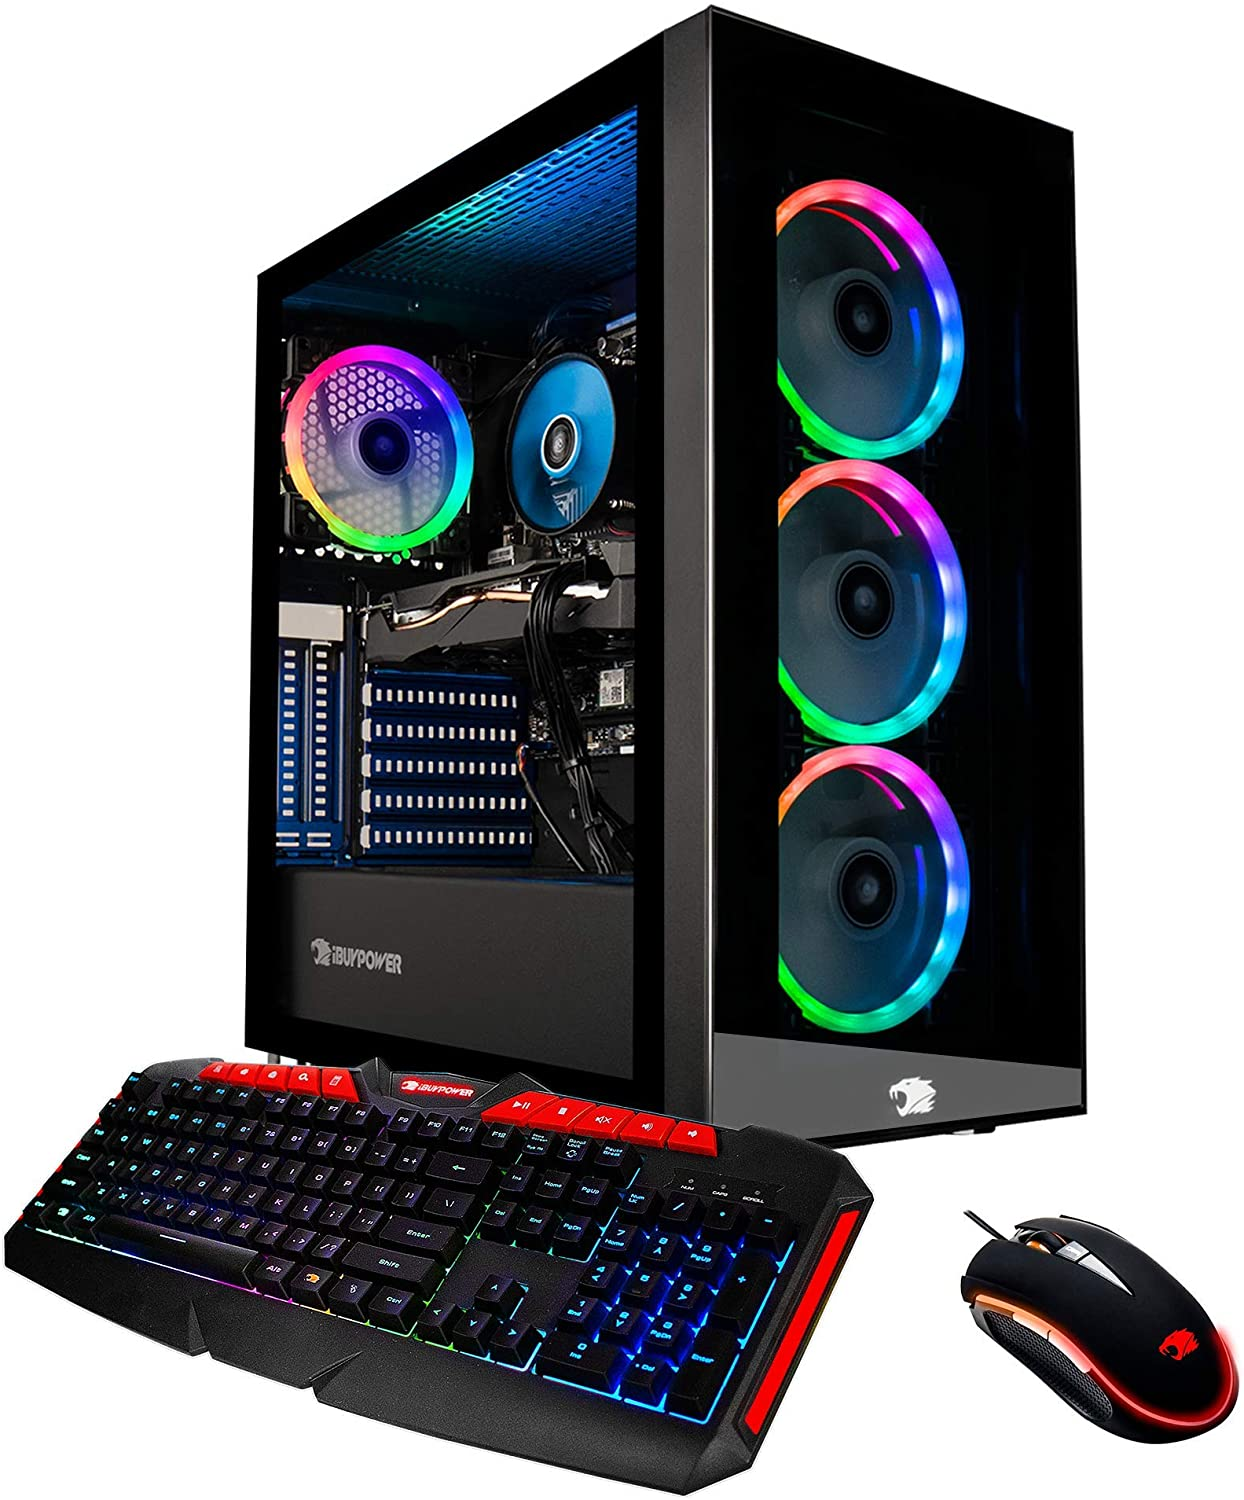 iBUYPOWER Pro Gaming PC Computer Desktop Element MR9270 (Intel Core i7-9700F 3.0GHz, NVIDIA GeForce RTX 2060 6GB, 16GB DDR4-2666 RAM, 1TB HDD, 240GB SSD, WiFi Included, Windows 10, VR Ready) Black